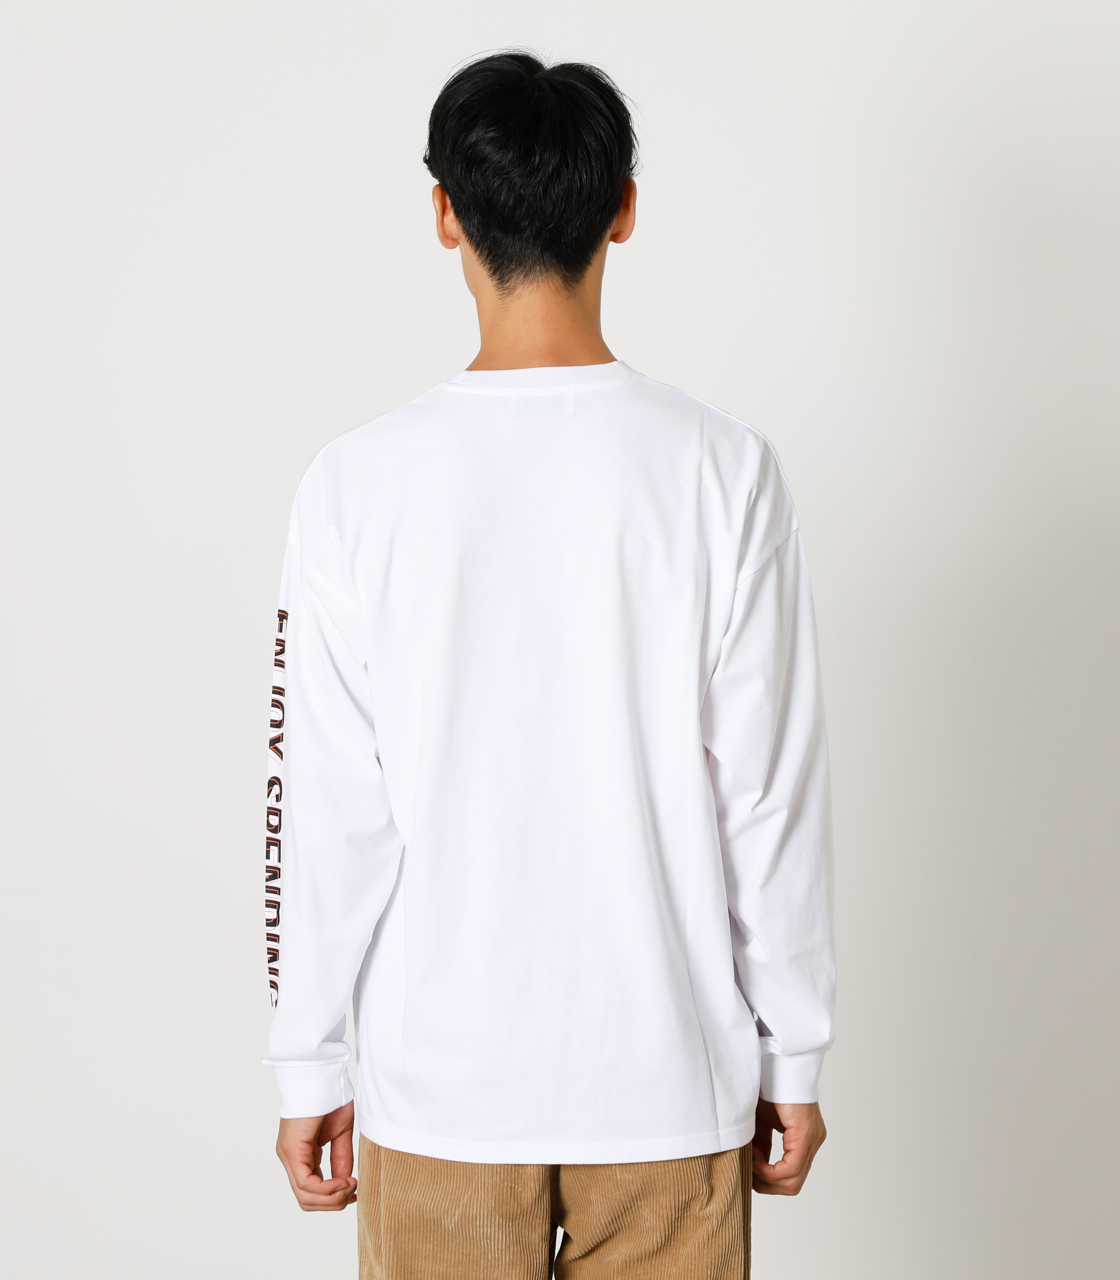 CARE FOR EACH OTHER PAIR TEE/ケアフォーイーチアザーペアTシャツ 詳細画像 WHT 7